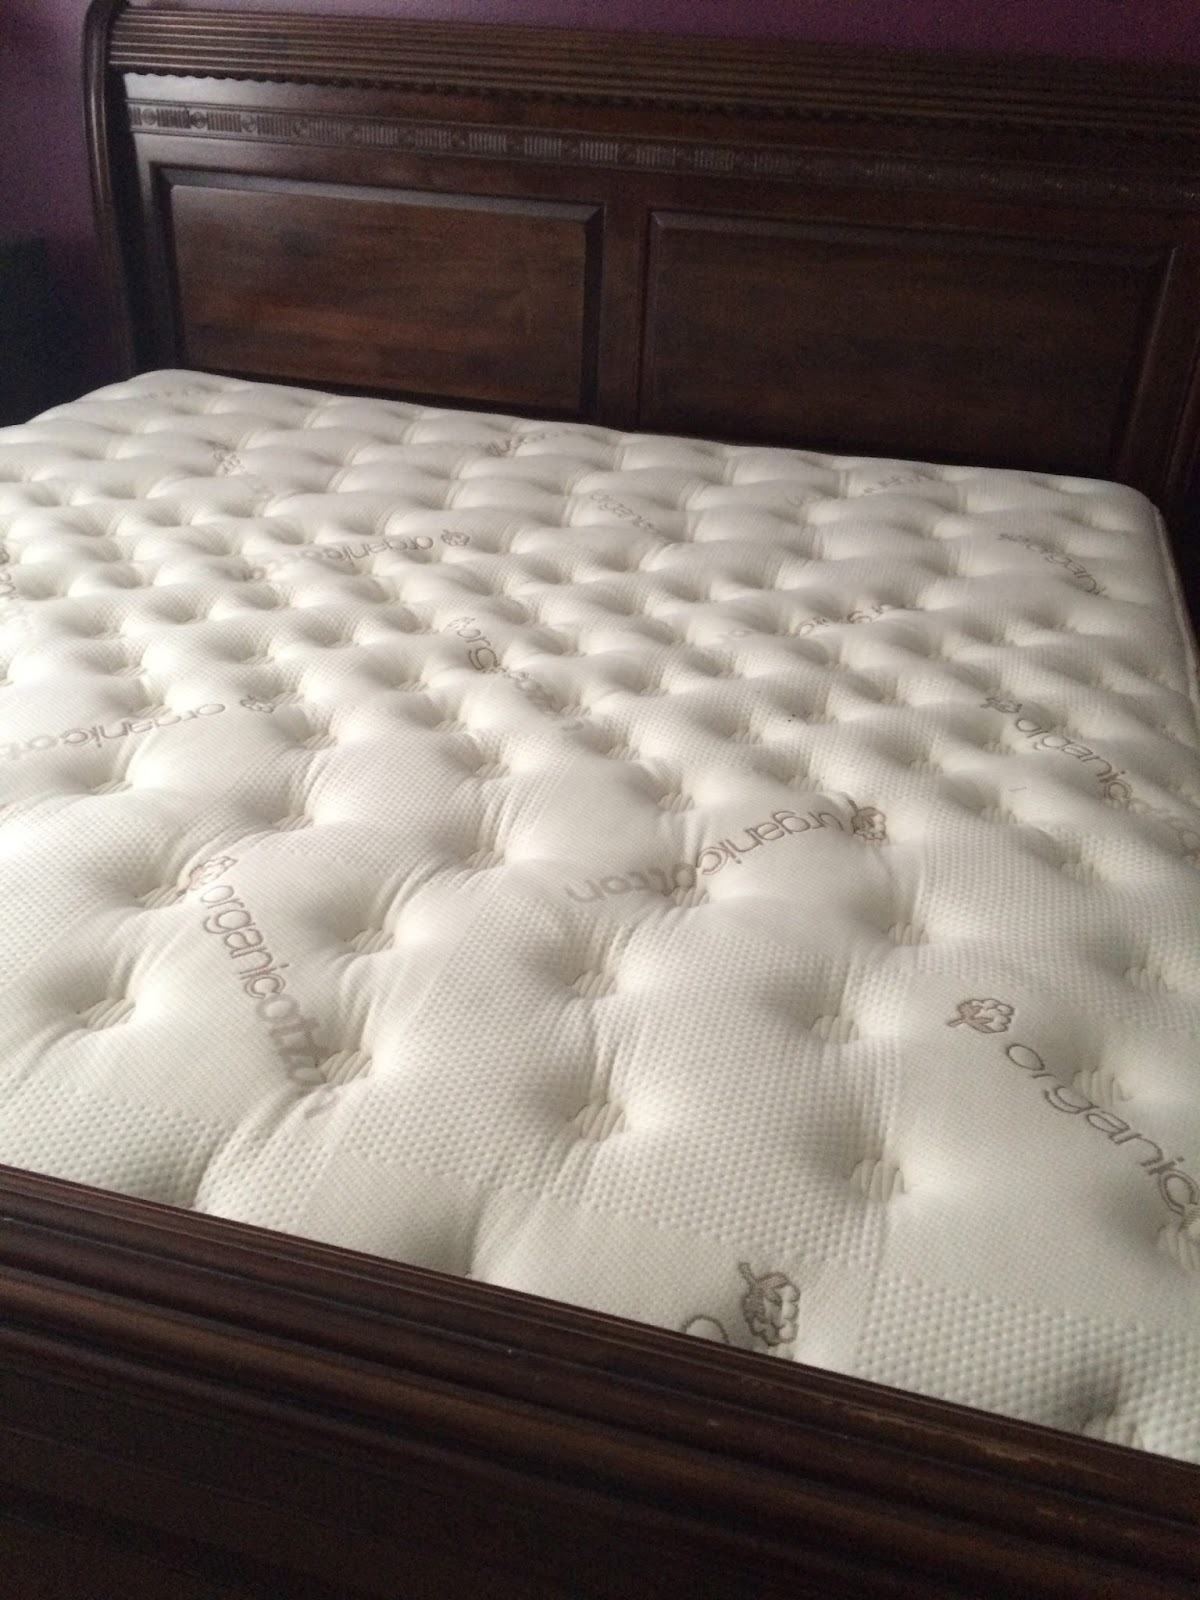 Dugroz Review of the Saatva Mattress and Foundation